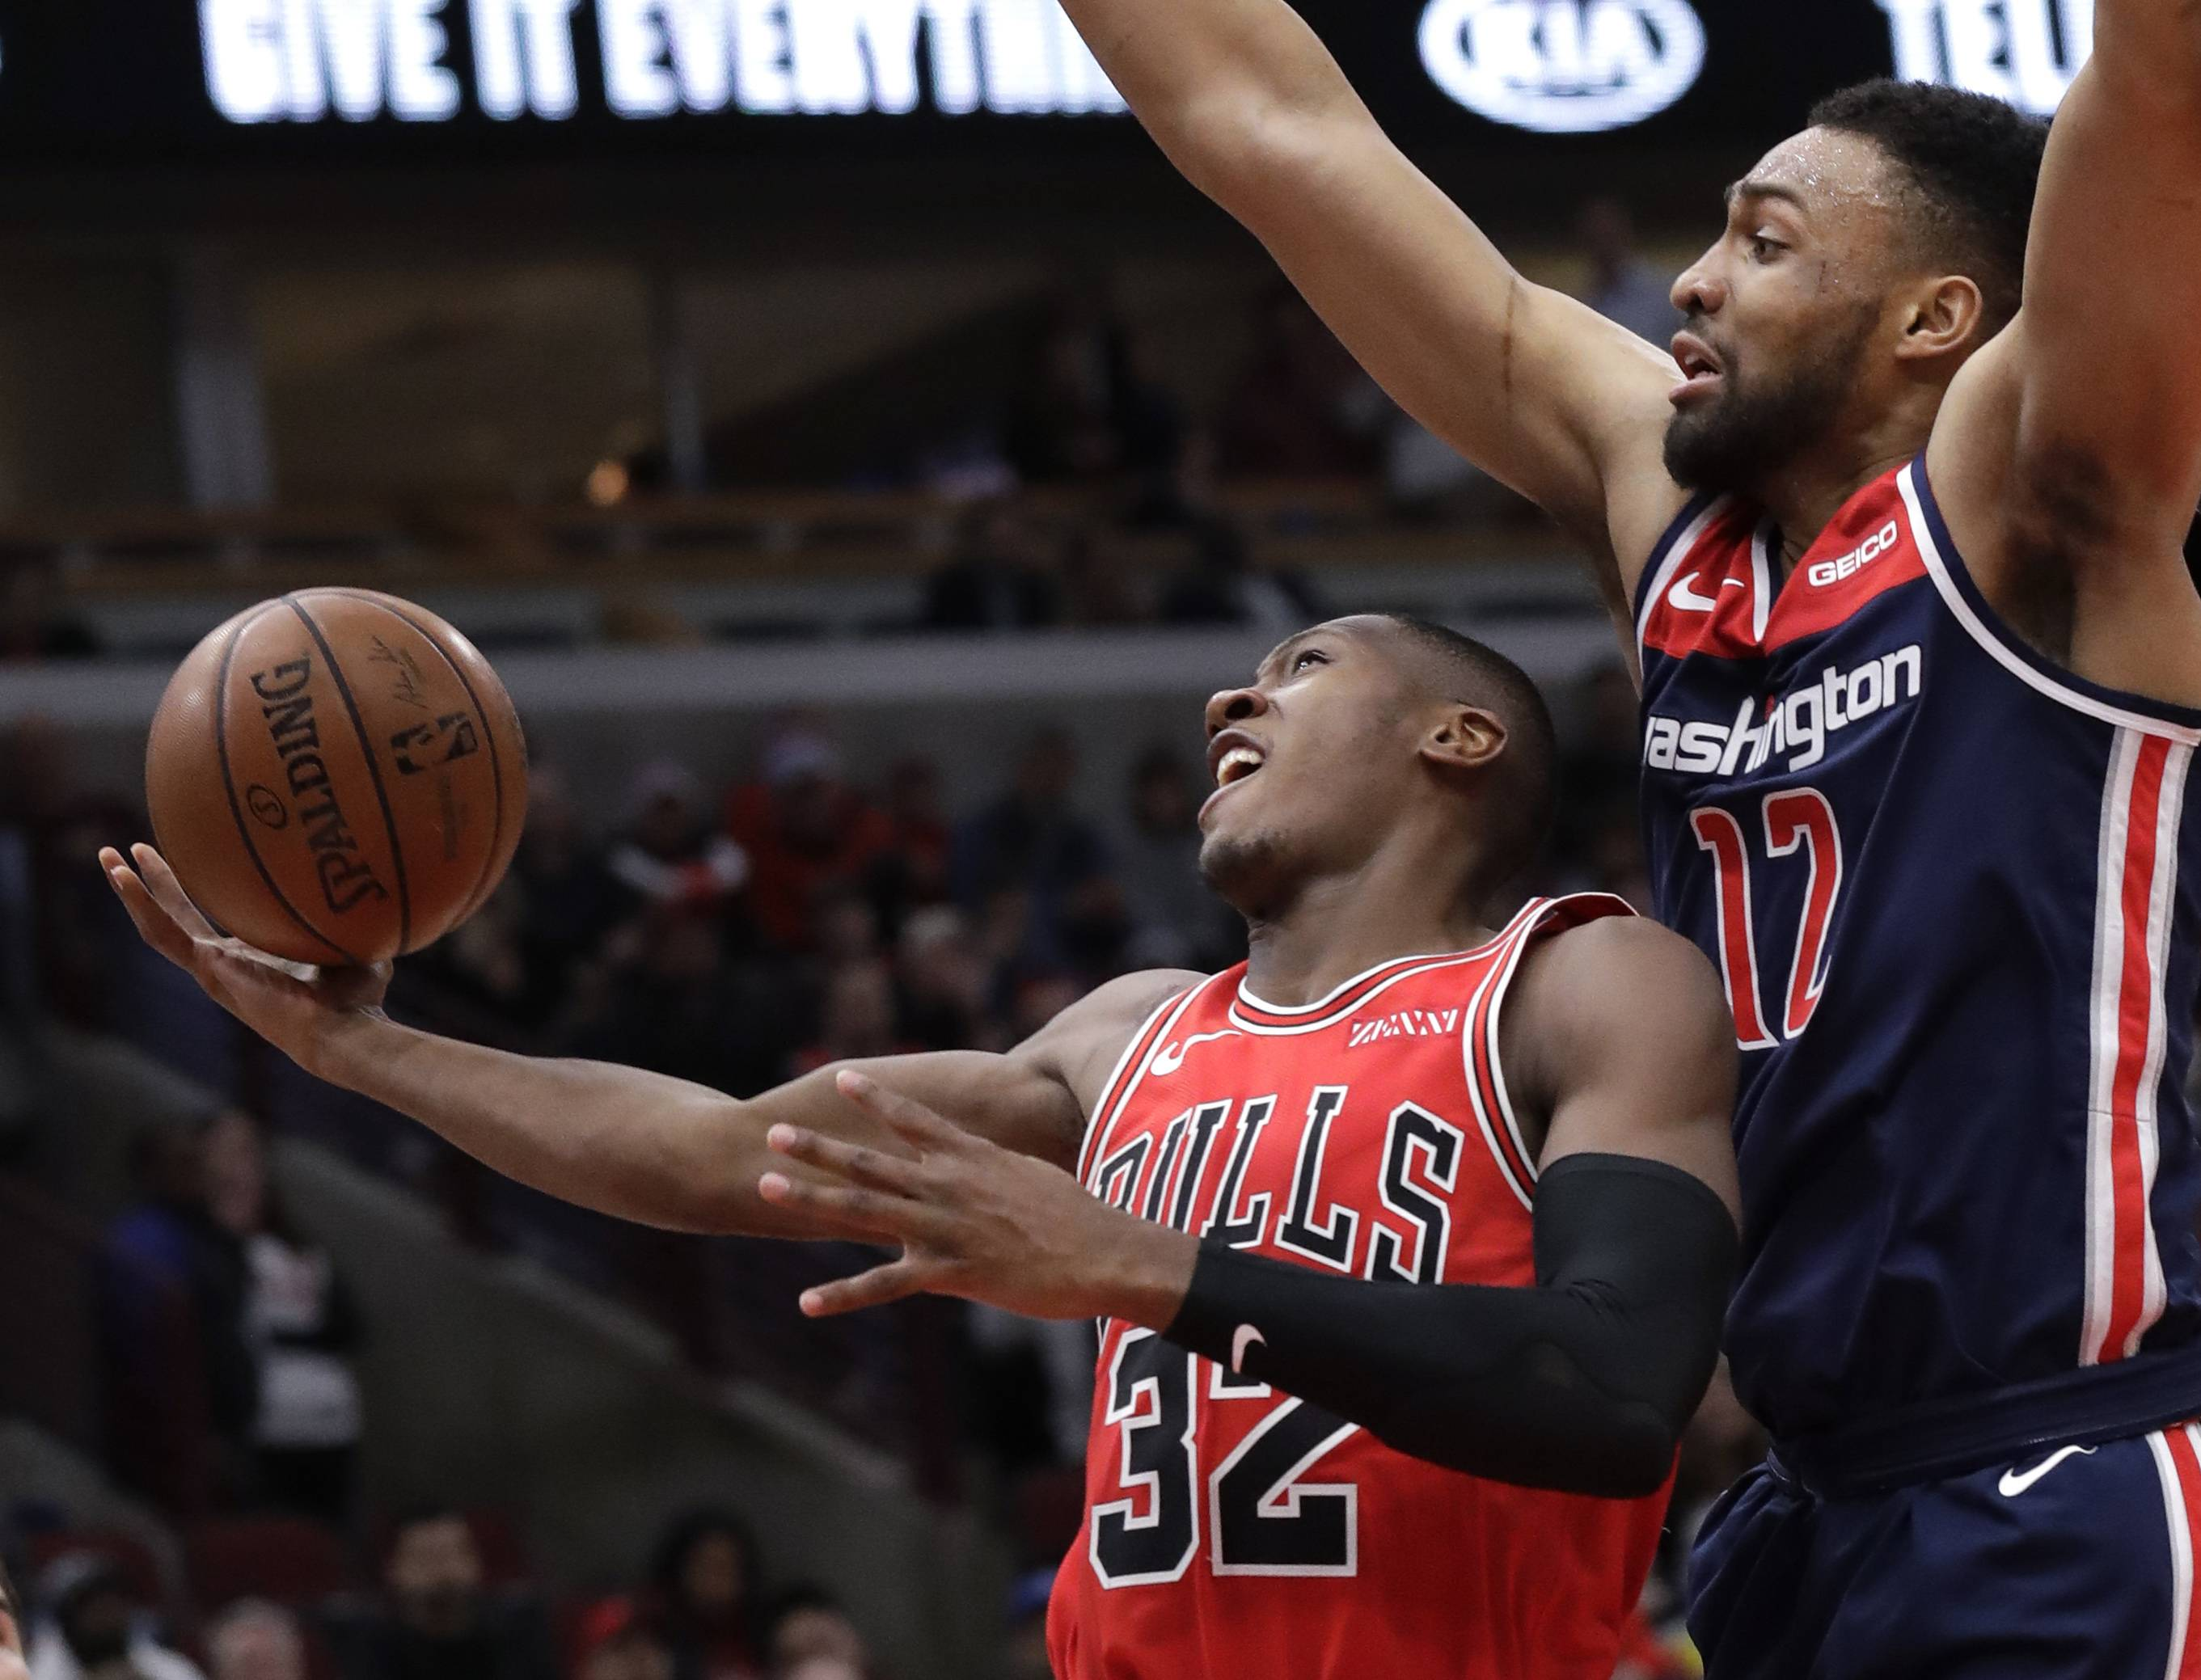 The victory over Washington helped illustrate the questions facing the Bulls at the point guard spot. Should they stick with Kris Dunn, who produced 26 points and 13 assists on Wednesday?